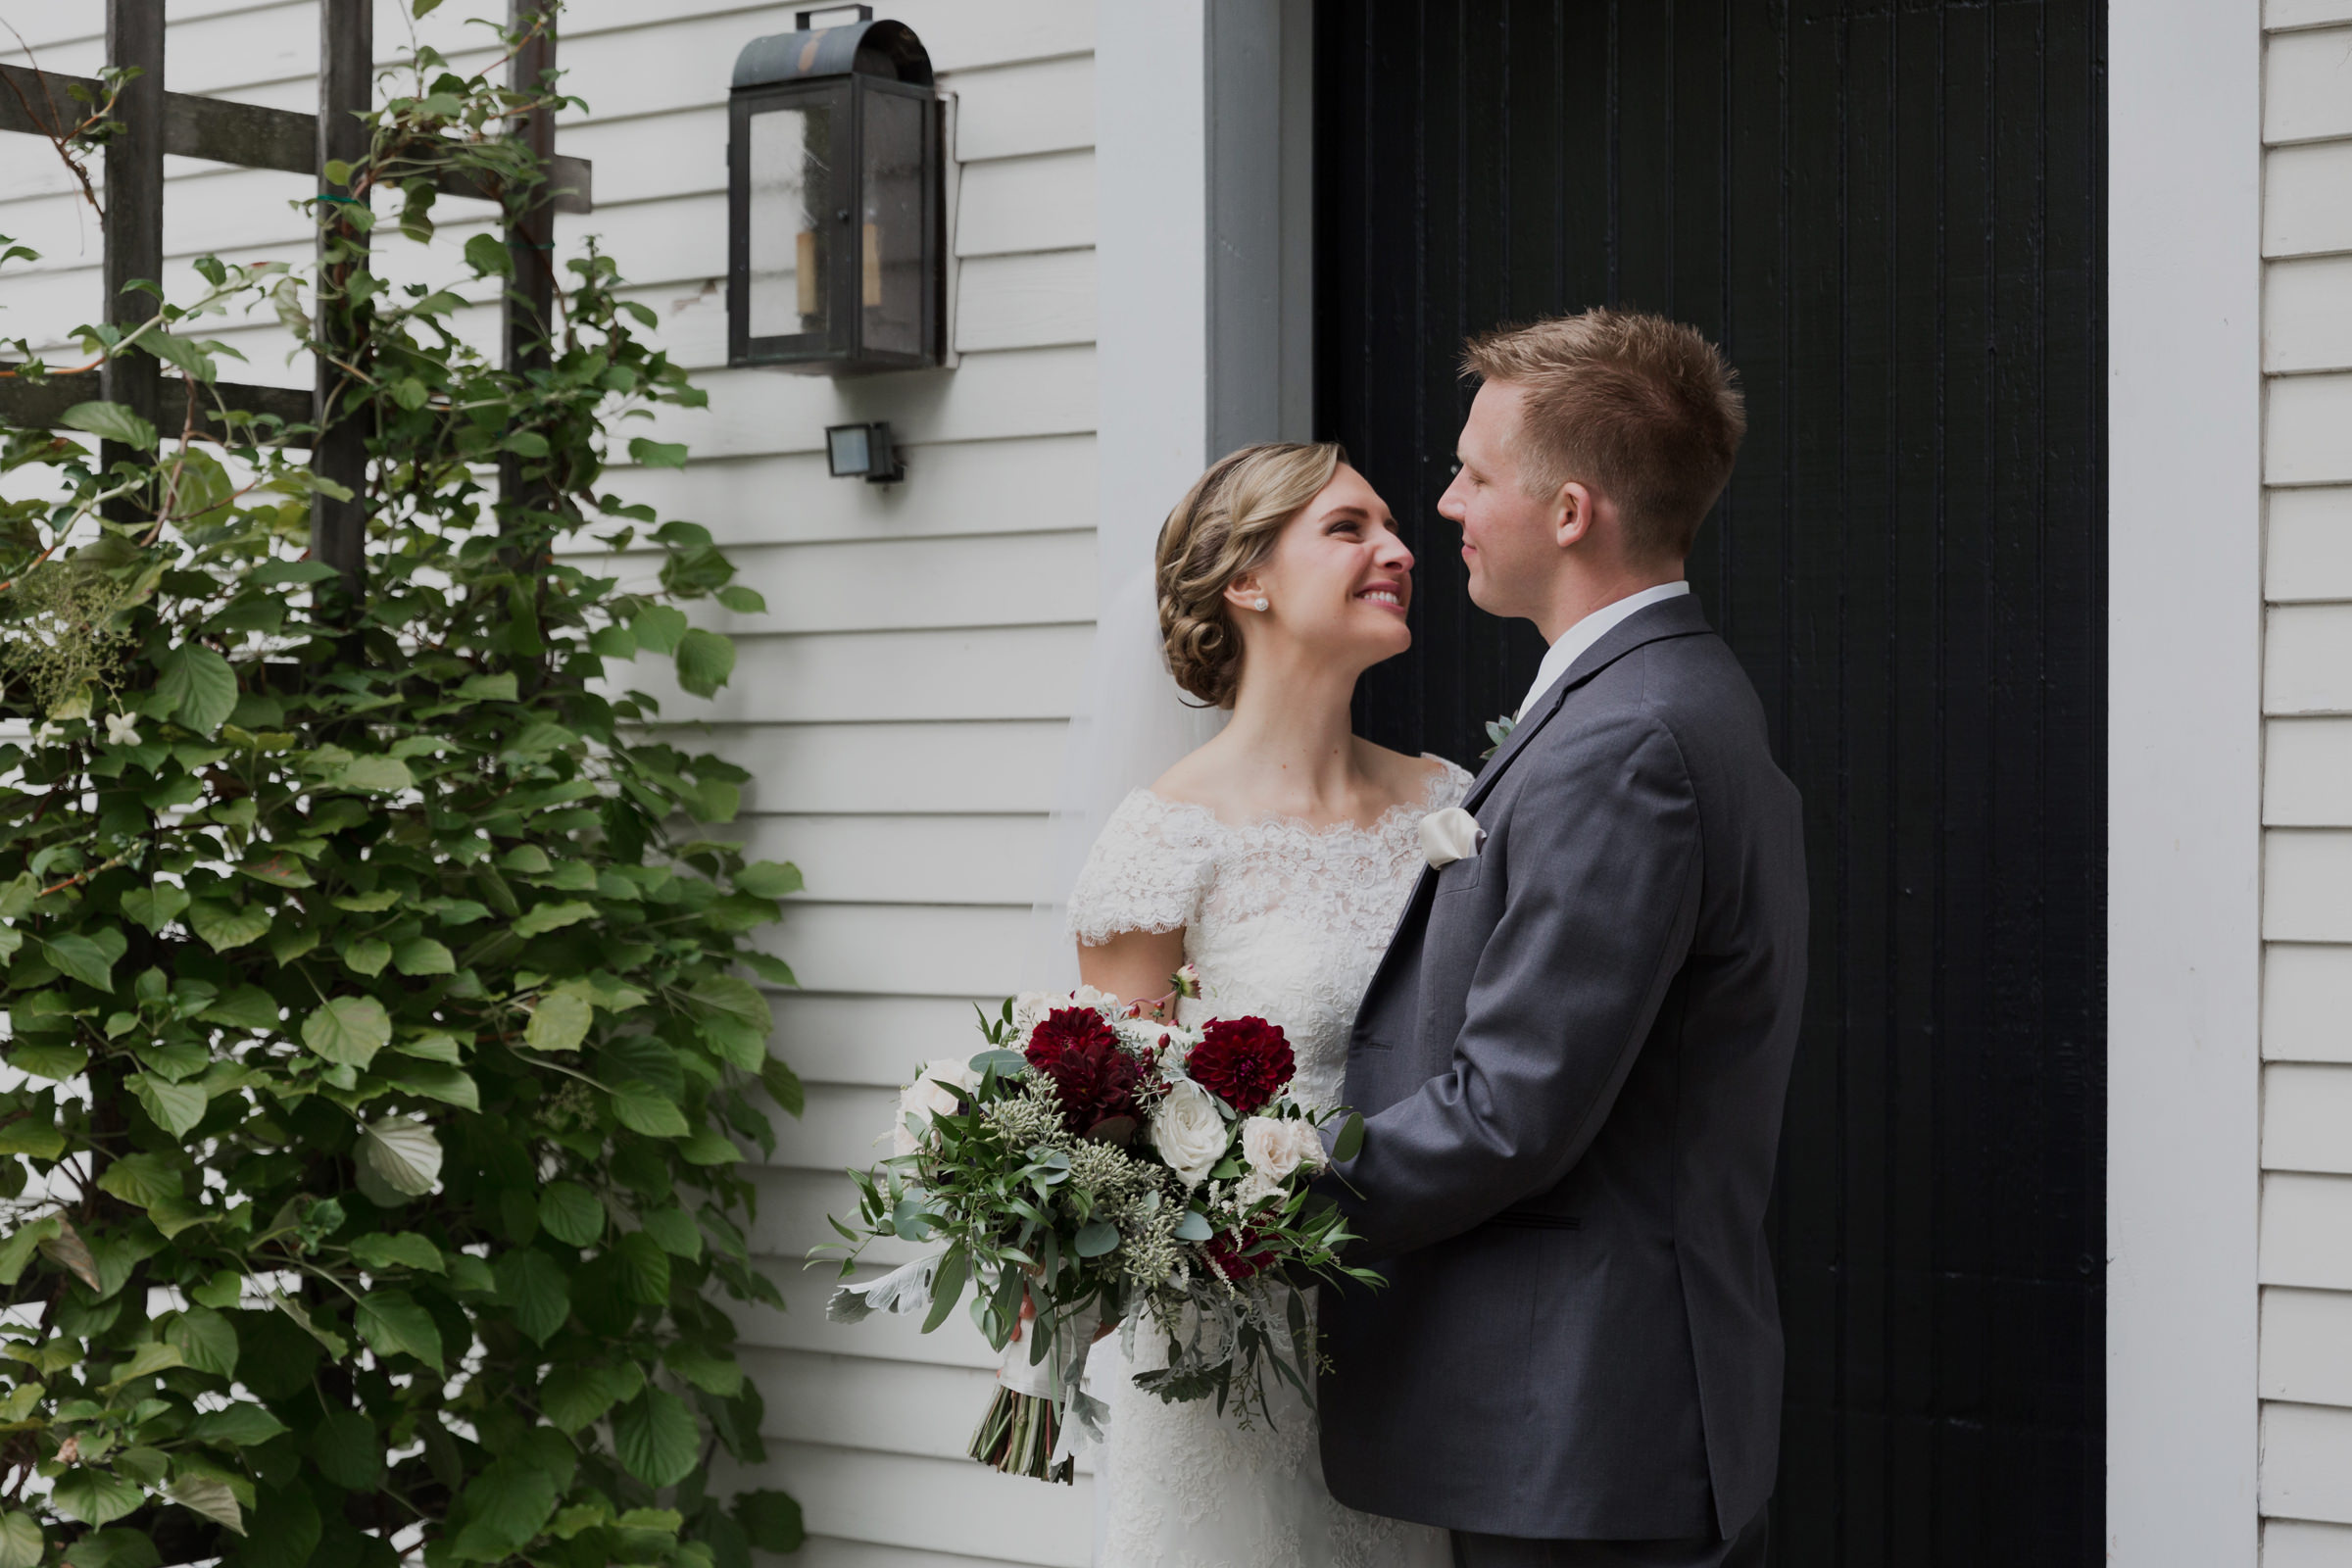 In front of The Barn on Walnut Hill on their wedding day